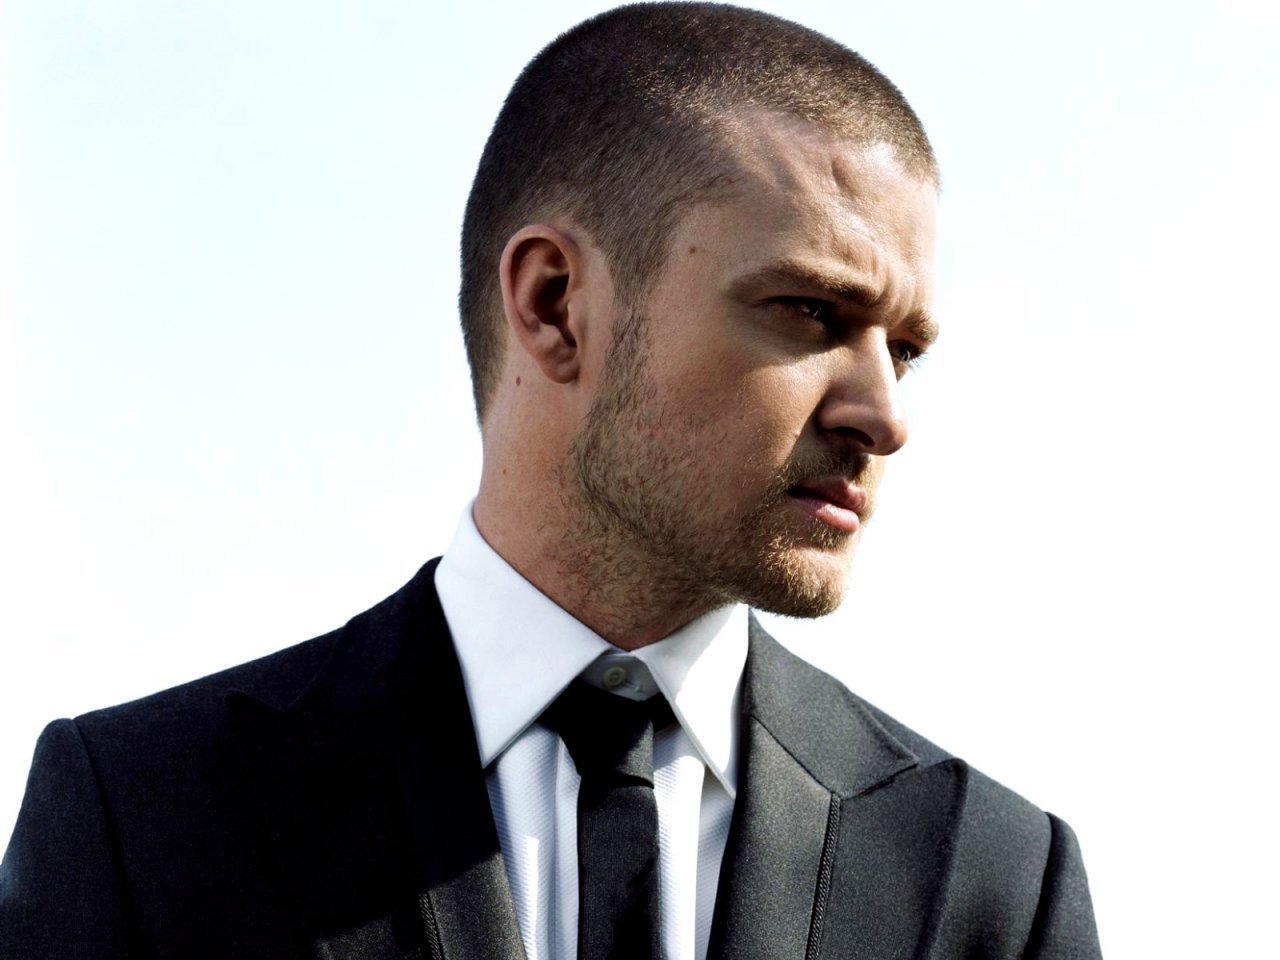 Justin Timberlake Wallpapers HDJustin Timberlake